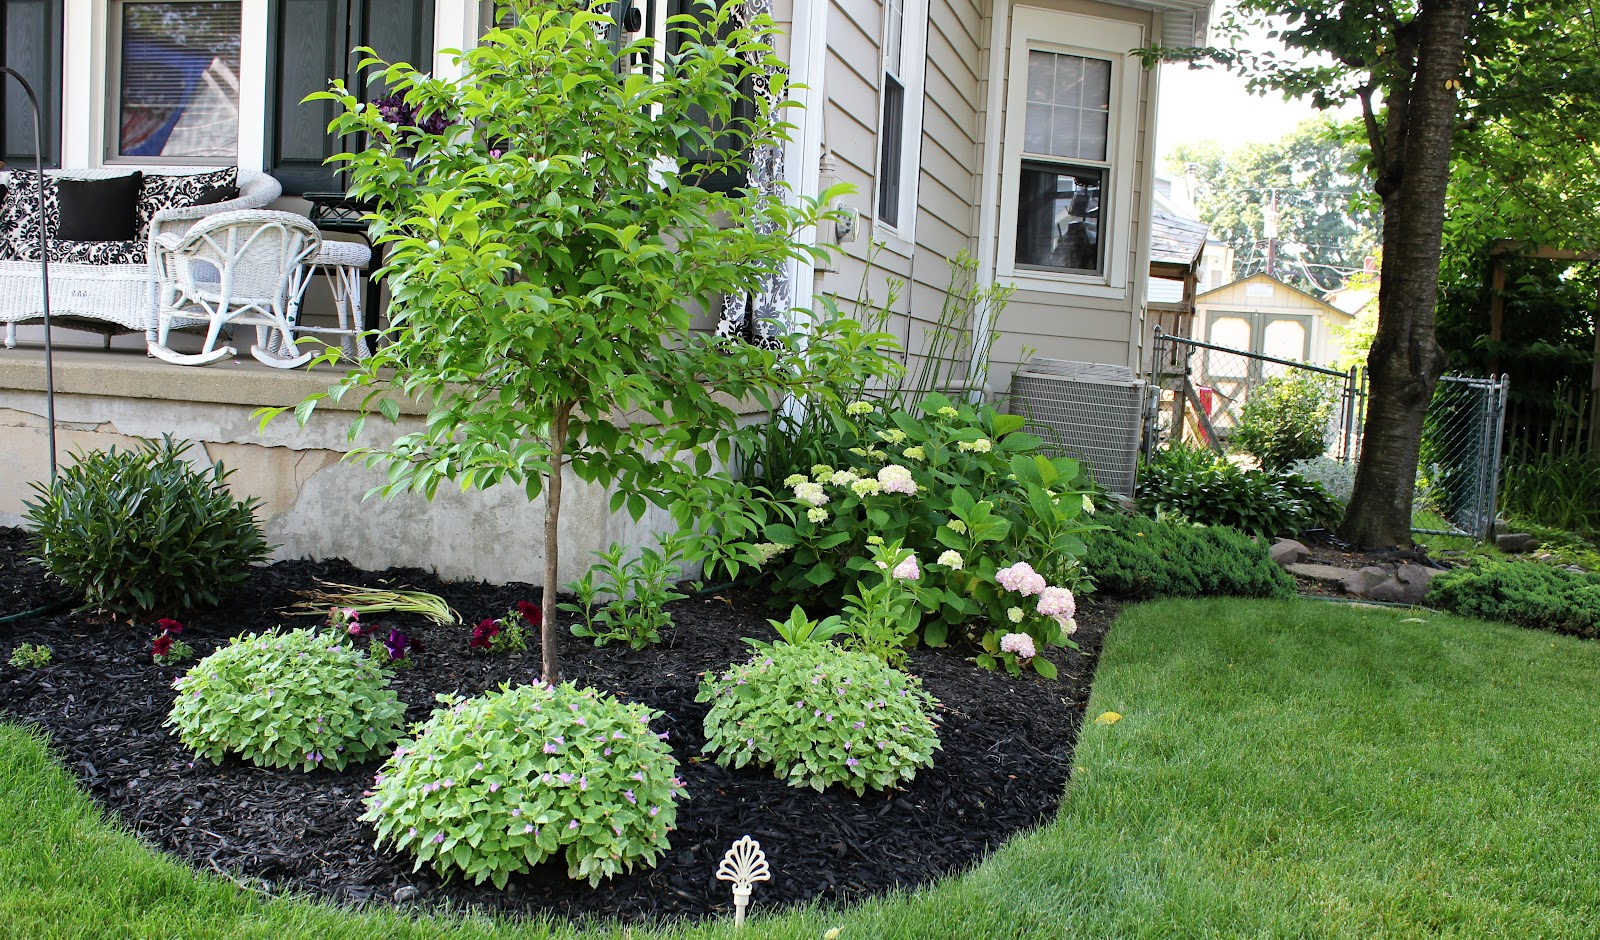 Bleu hydrangea may 2012 for Flower bed in front of house